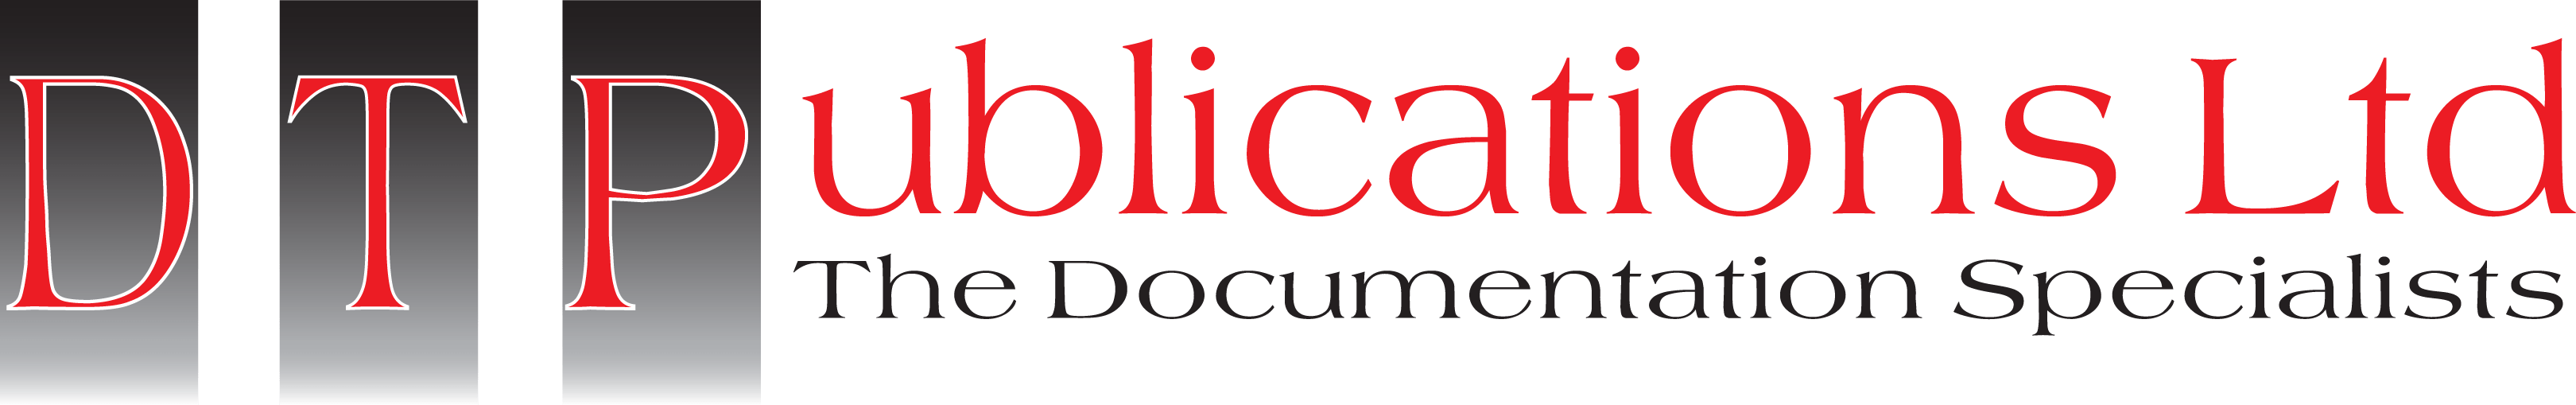 DT Publications Ltd - Technical Documentation Specialists